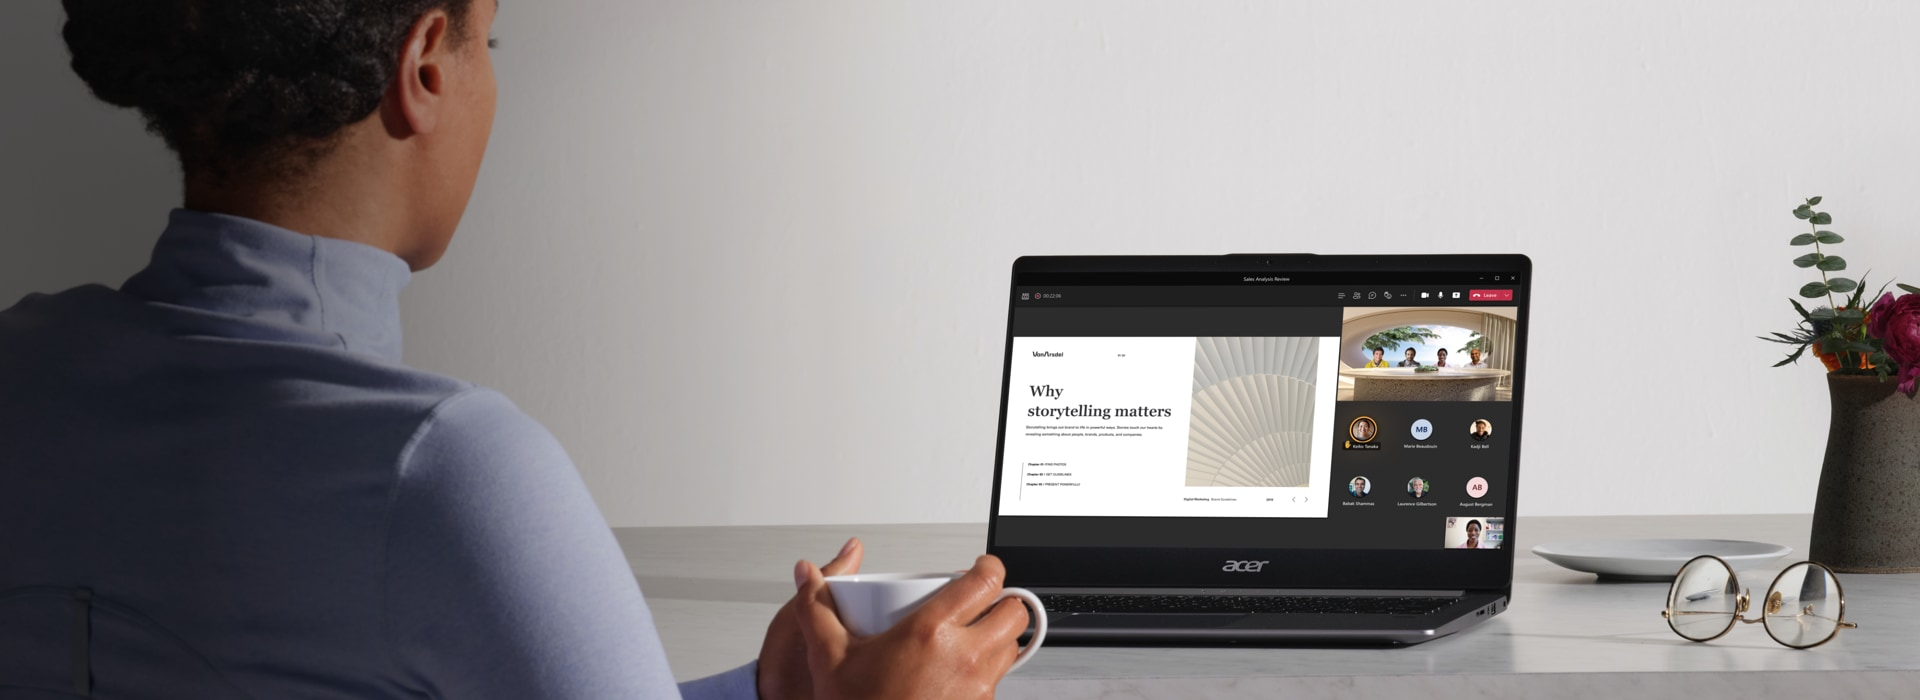 A person using a laptop to participate in a Teams call that is using Together mode and a presentation is being given.